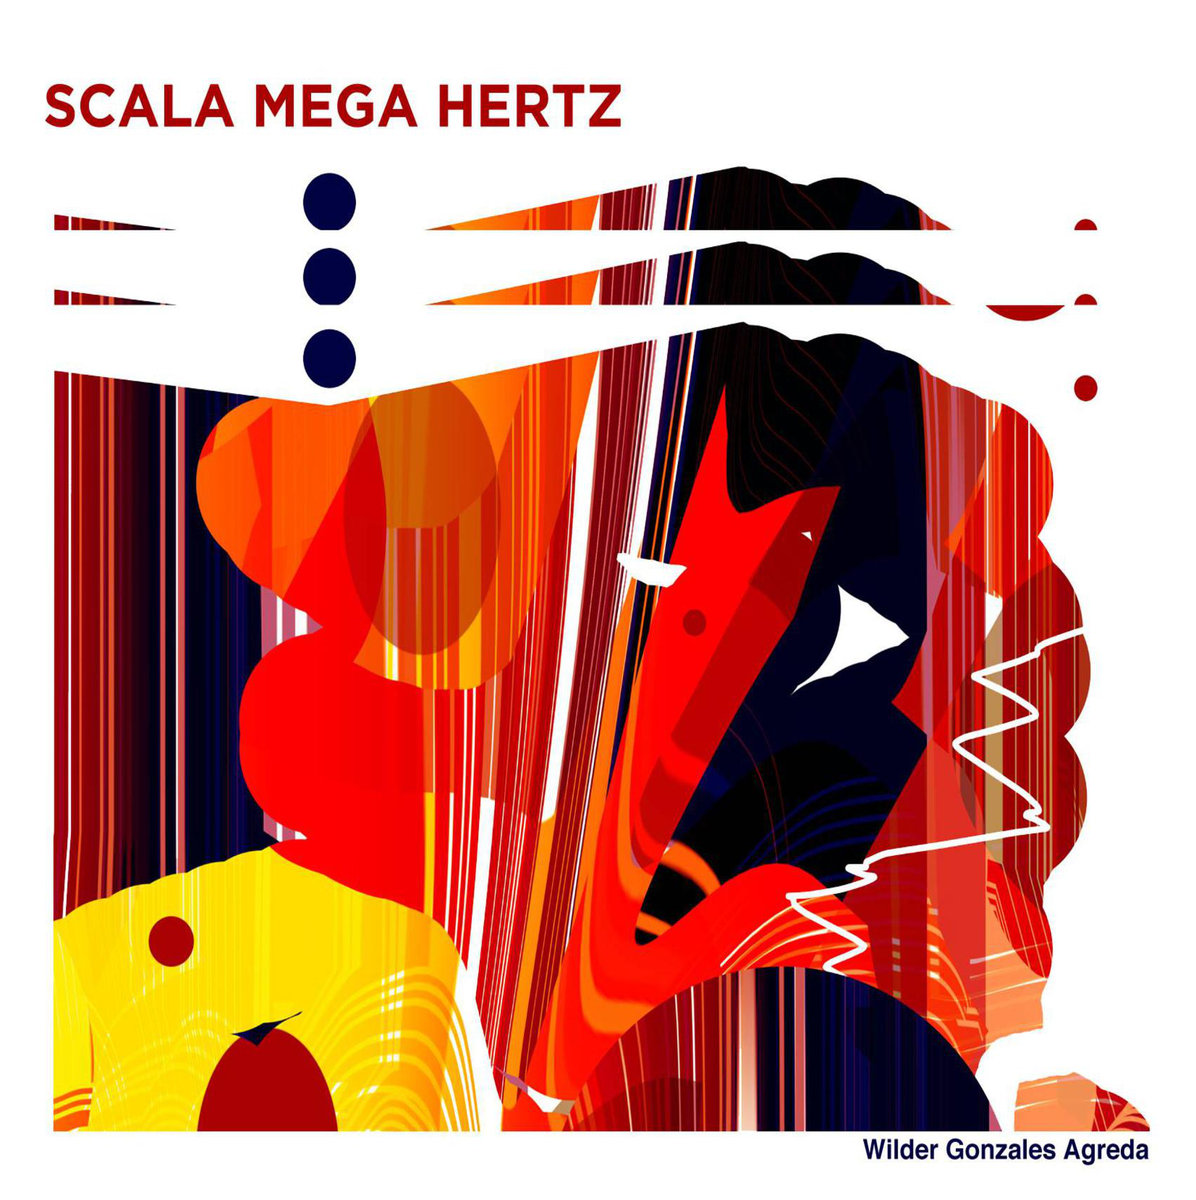 SCALA MEGA HERTZ new disc by Wilder Gonzales Agreda